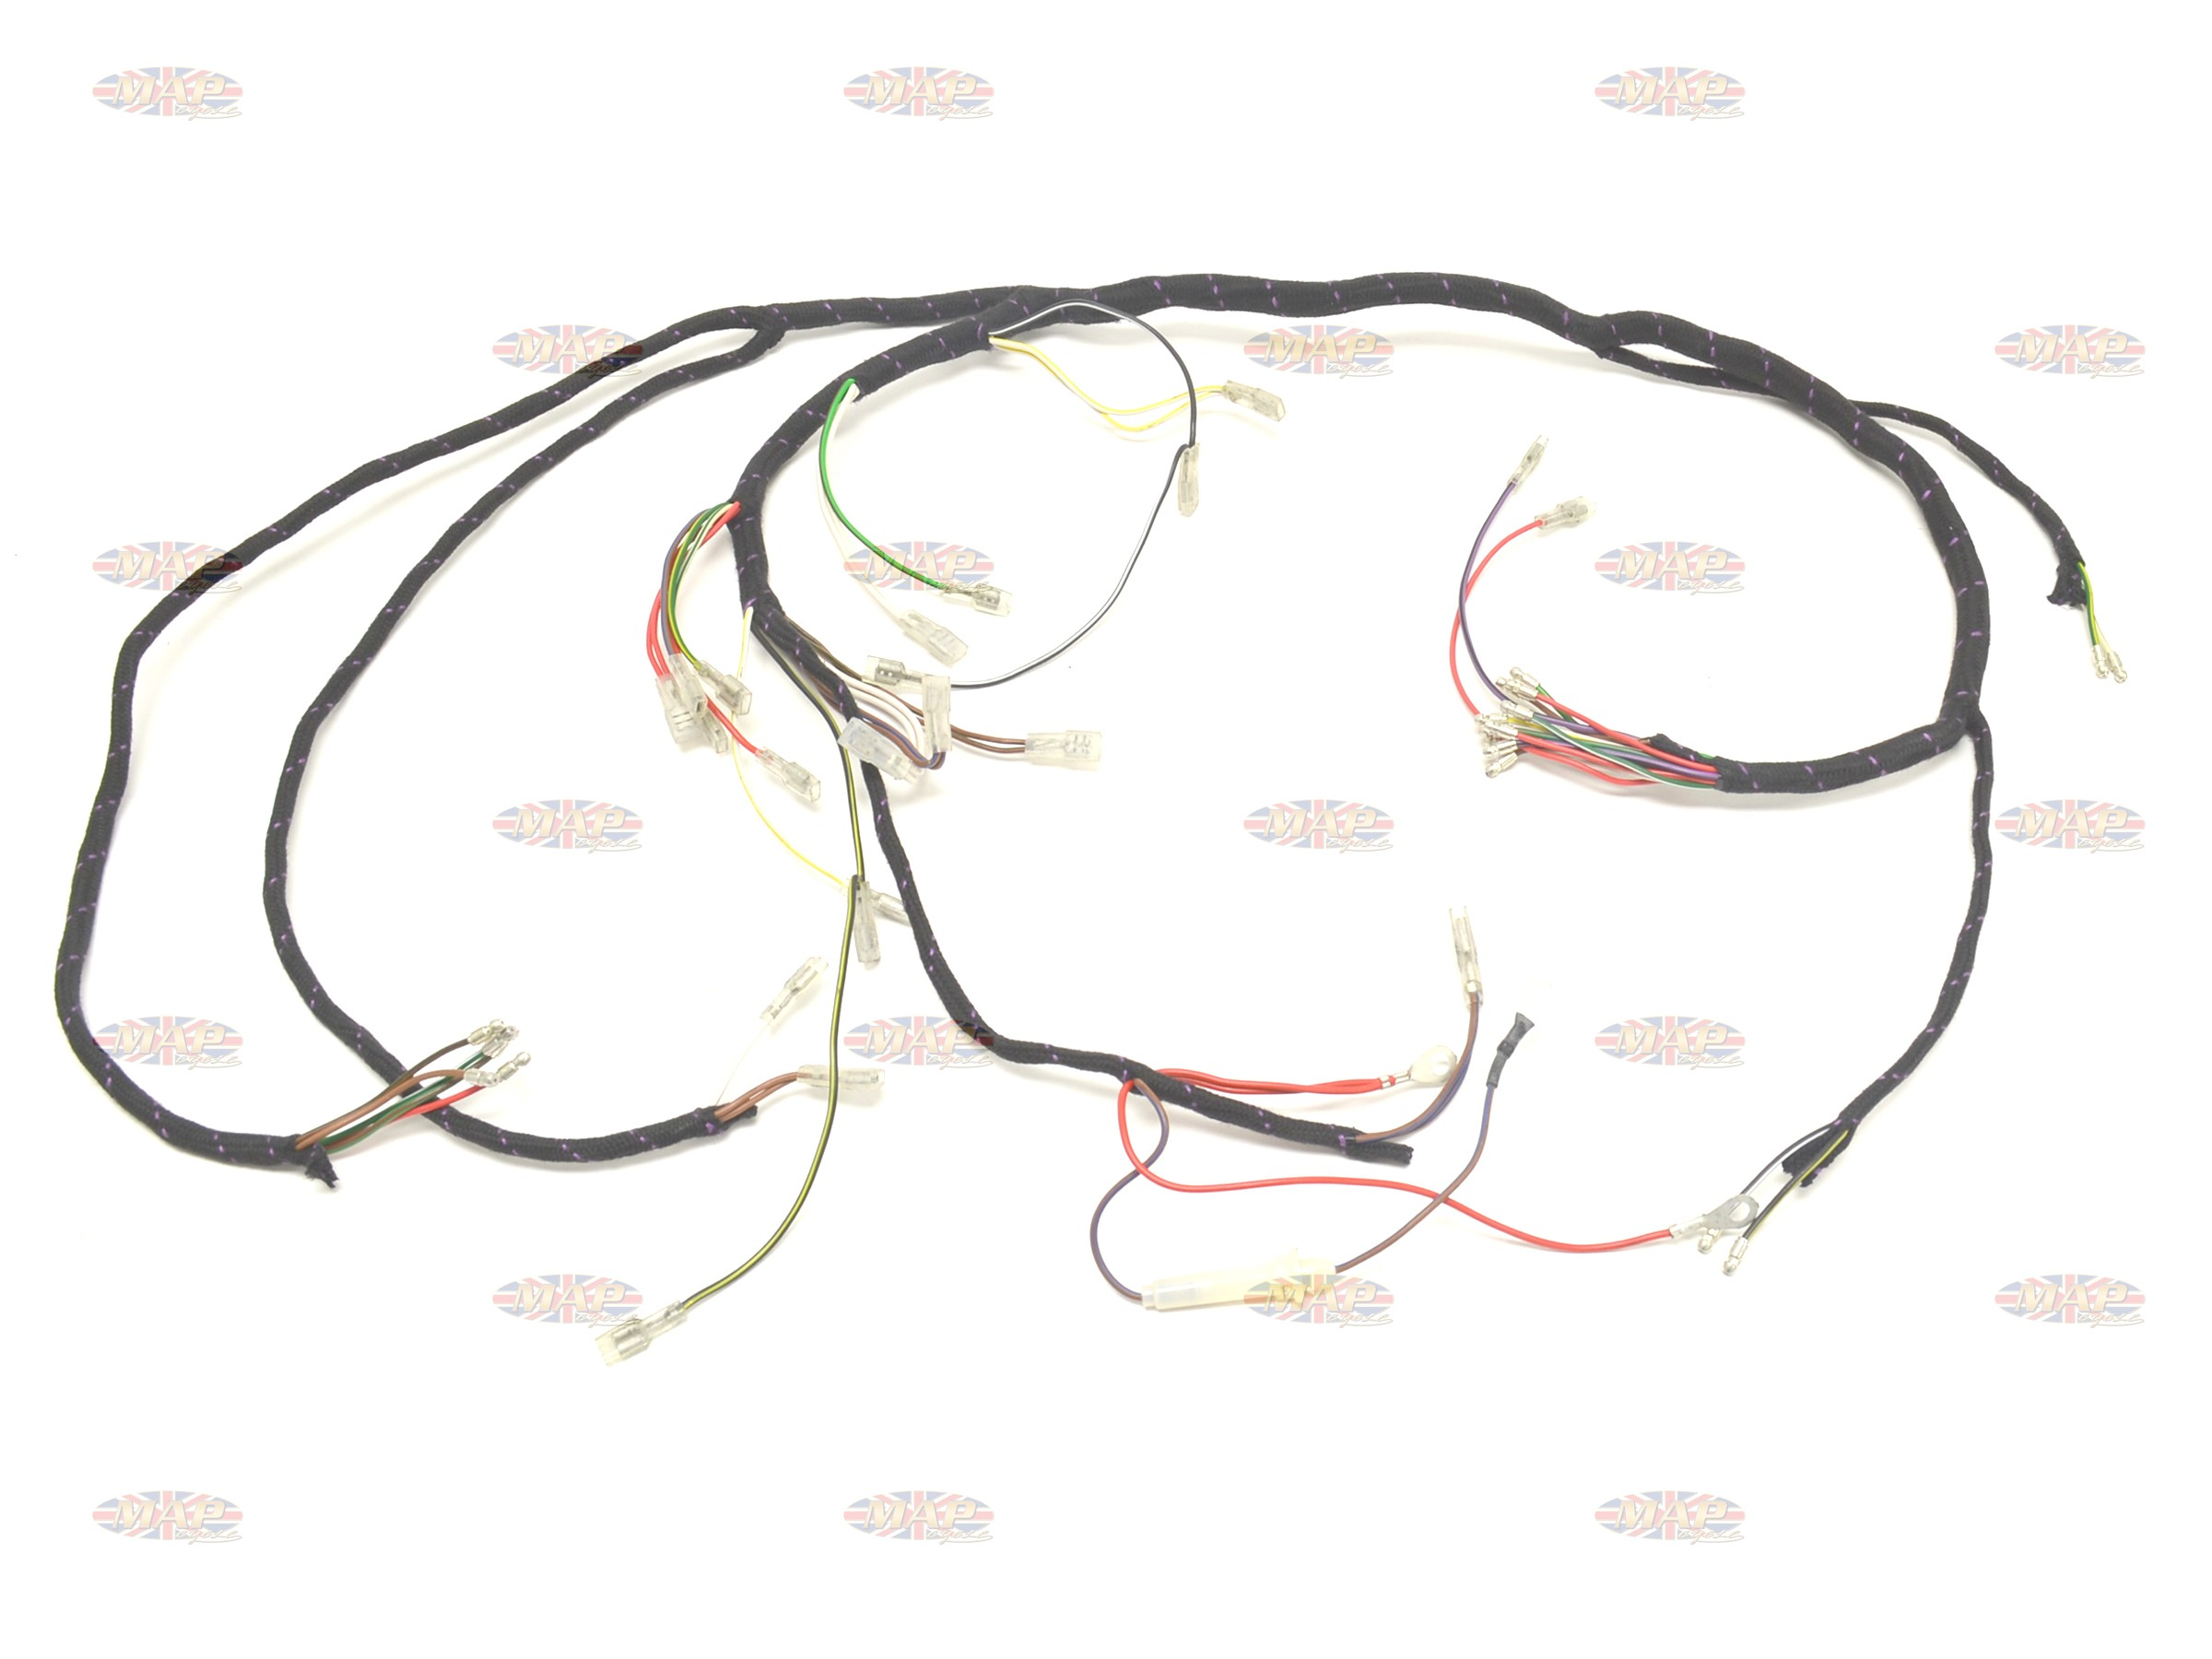 triumph 1971 73 t120 bonneville tr6 tiger uk made main wiring harness c70 triumph 1971 73 t120 bonneville tr6 tiger uk made main wiring harness tr6 wiring harness at creativeand.co